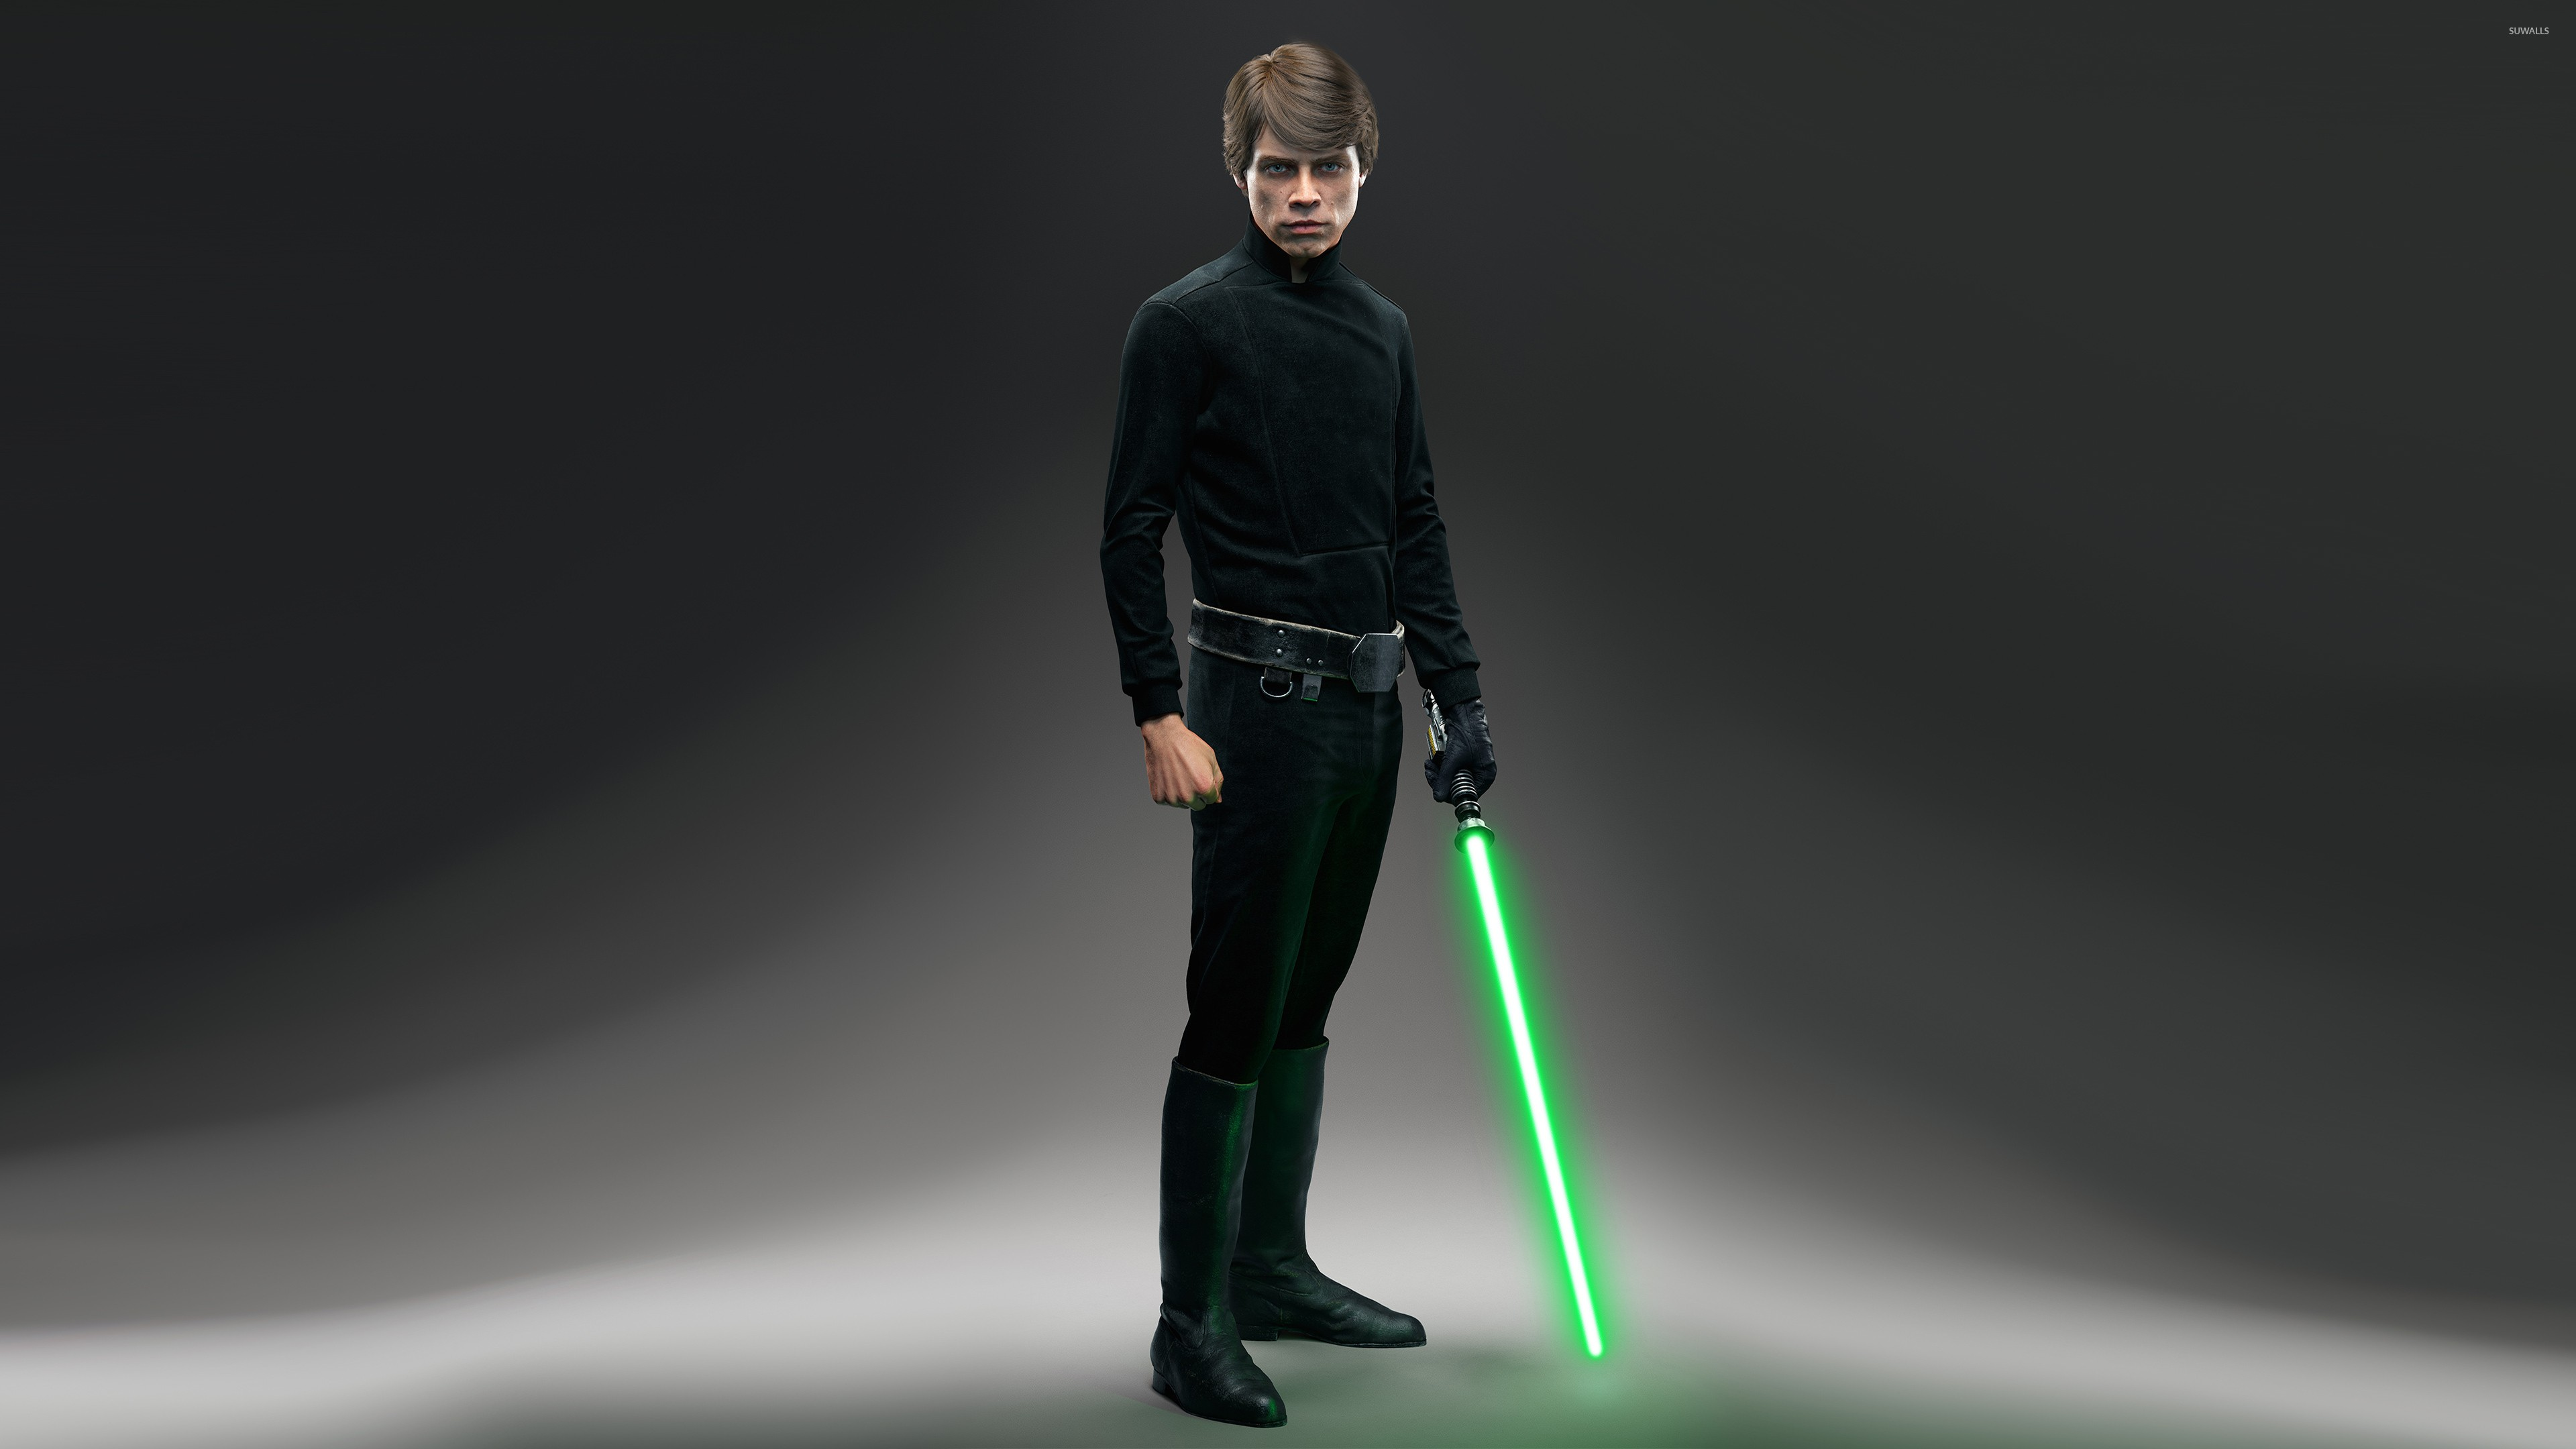 Luke Skywalker Wallpaper Download Free Awesome High Resolution